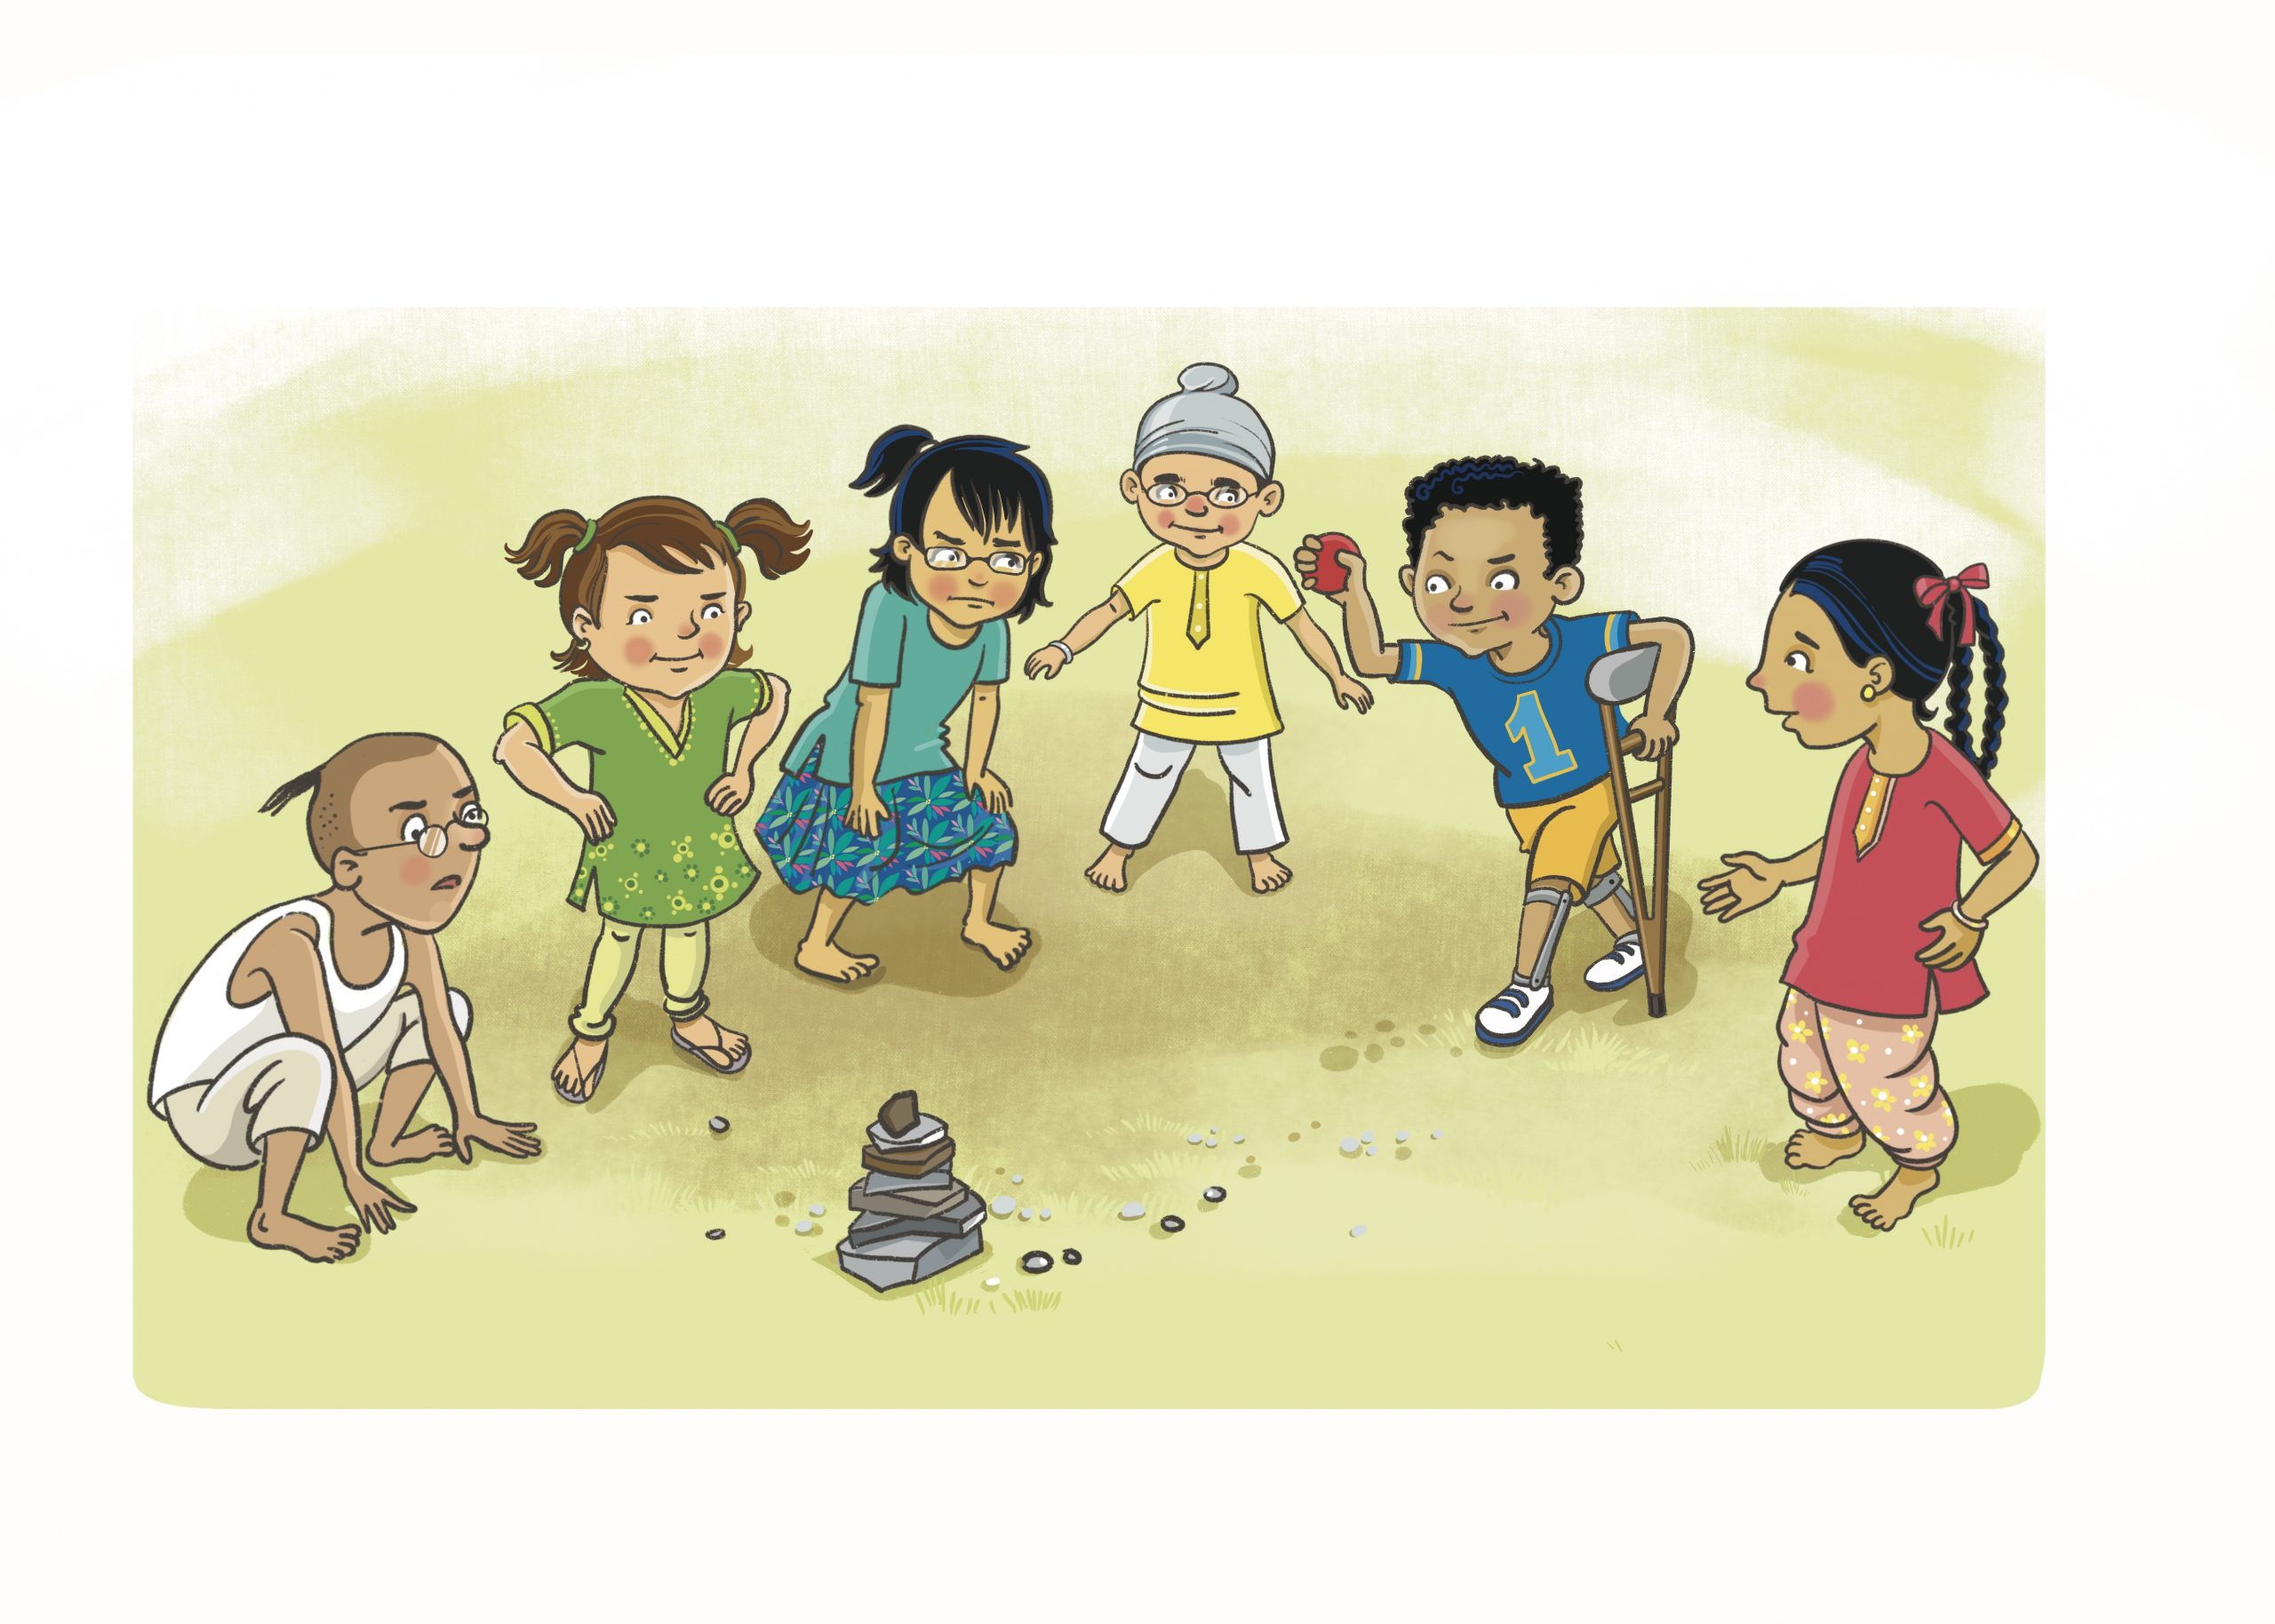 Artist's drawing of Indian children playing a traditional game of seven stones. Girls and boys in different Indian dress. One child is using a crutch.